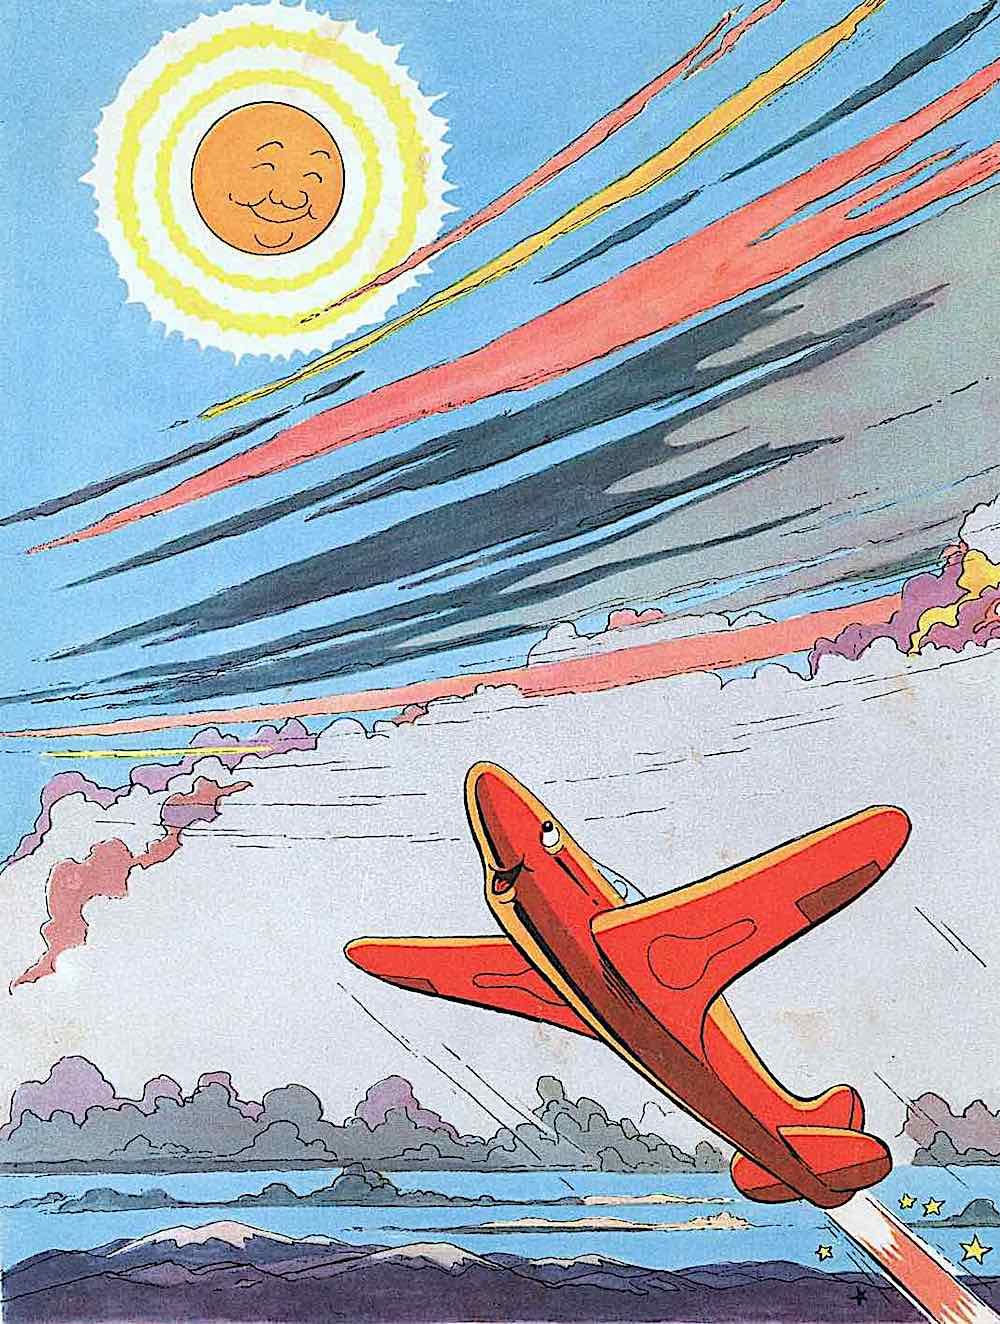 a Paul Pinson children's book illustration 1950, a little airplane flys to the sun